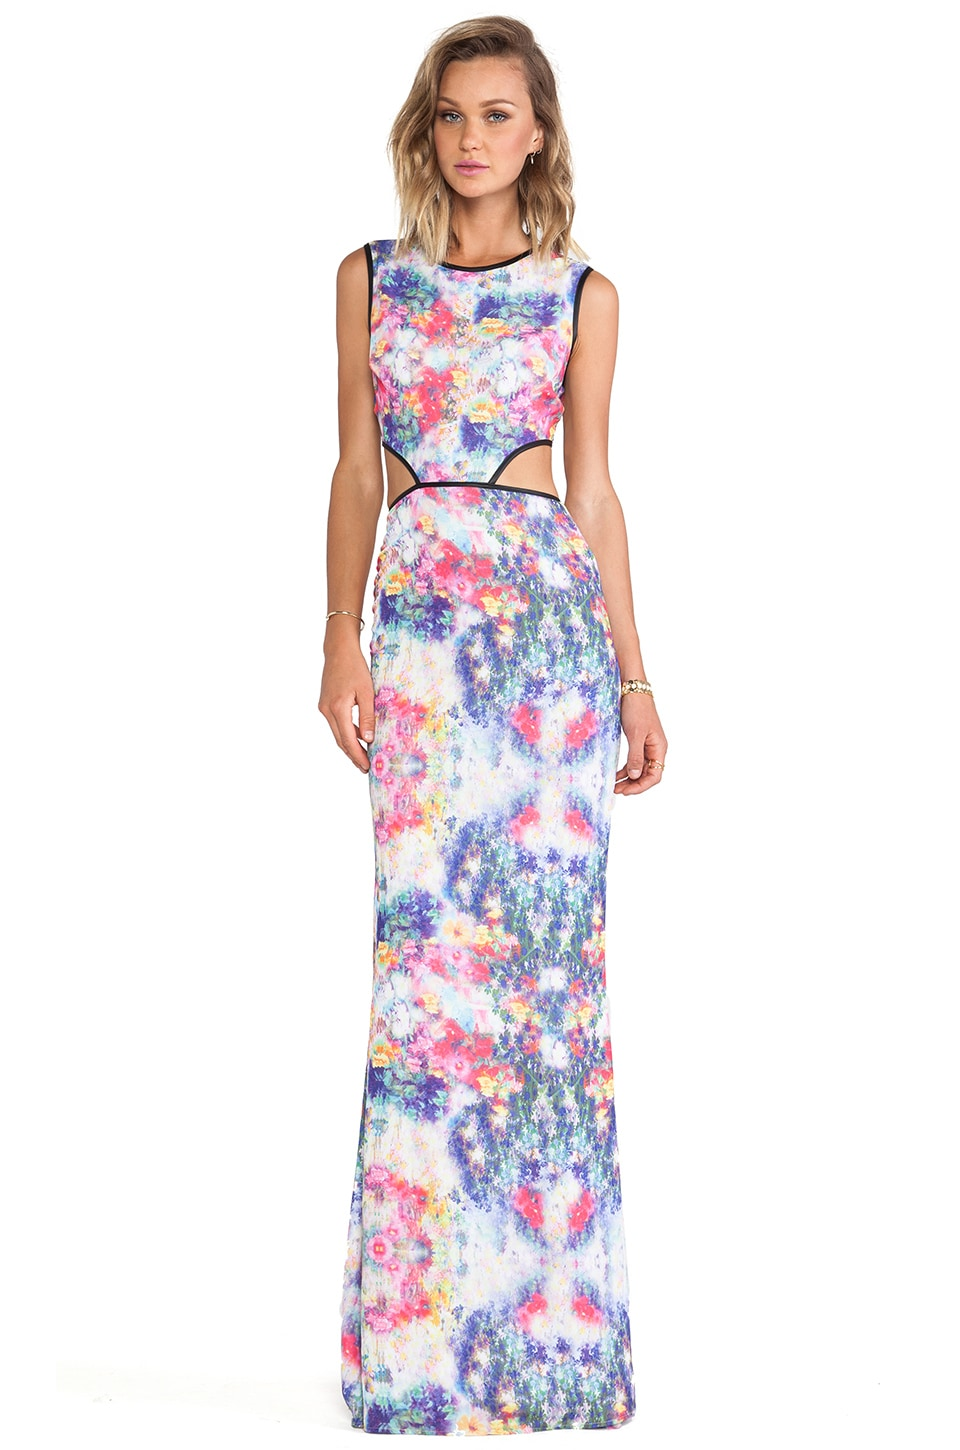 Boulee Max Maxi Dress in Ballet Print